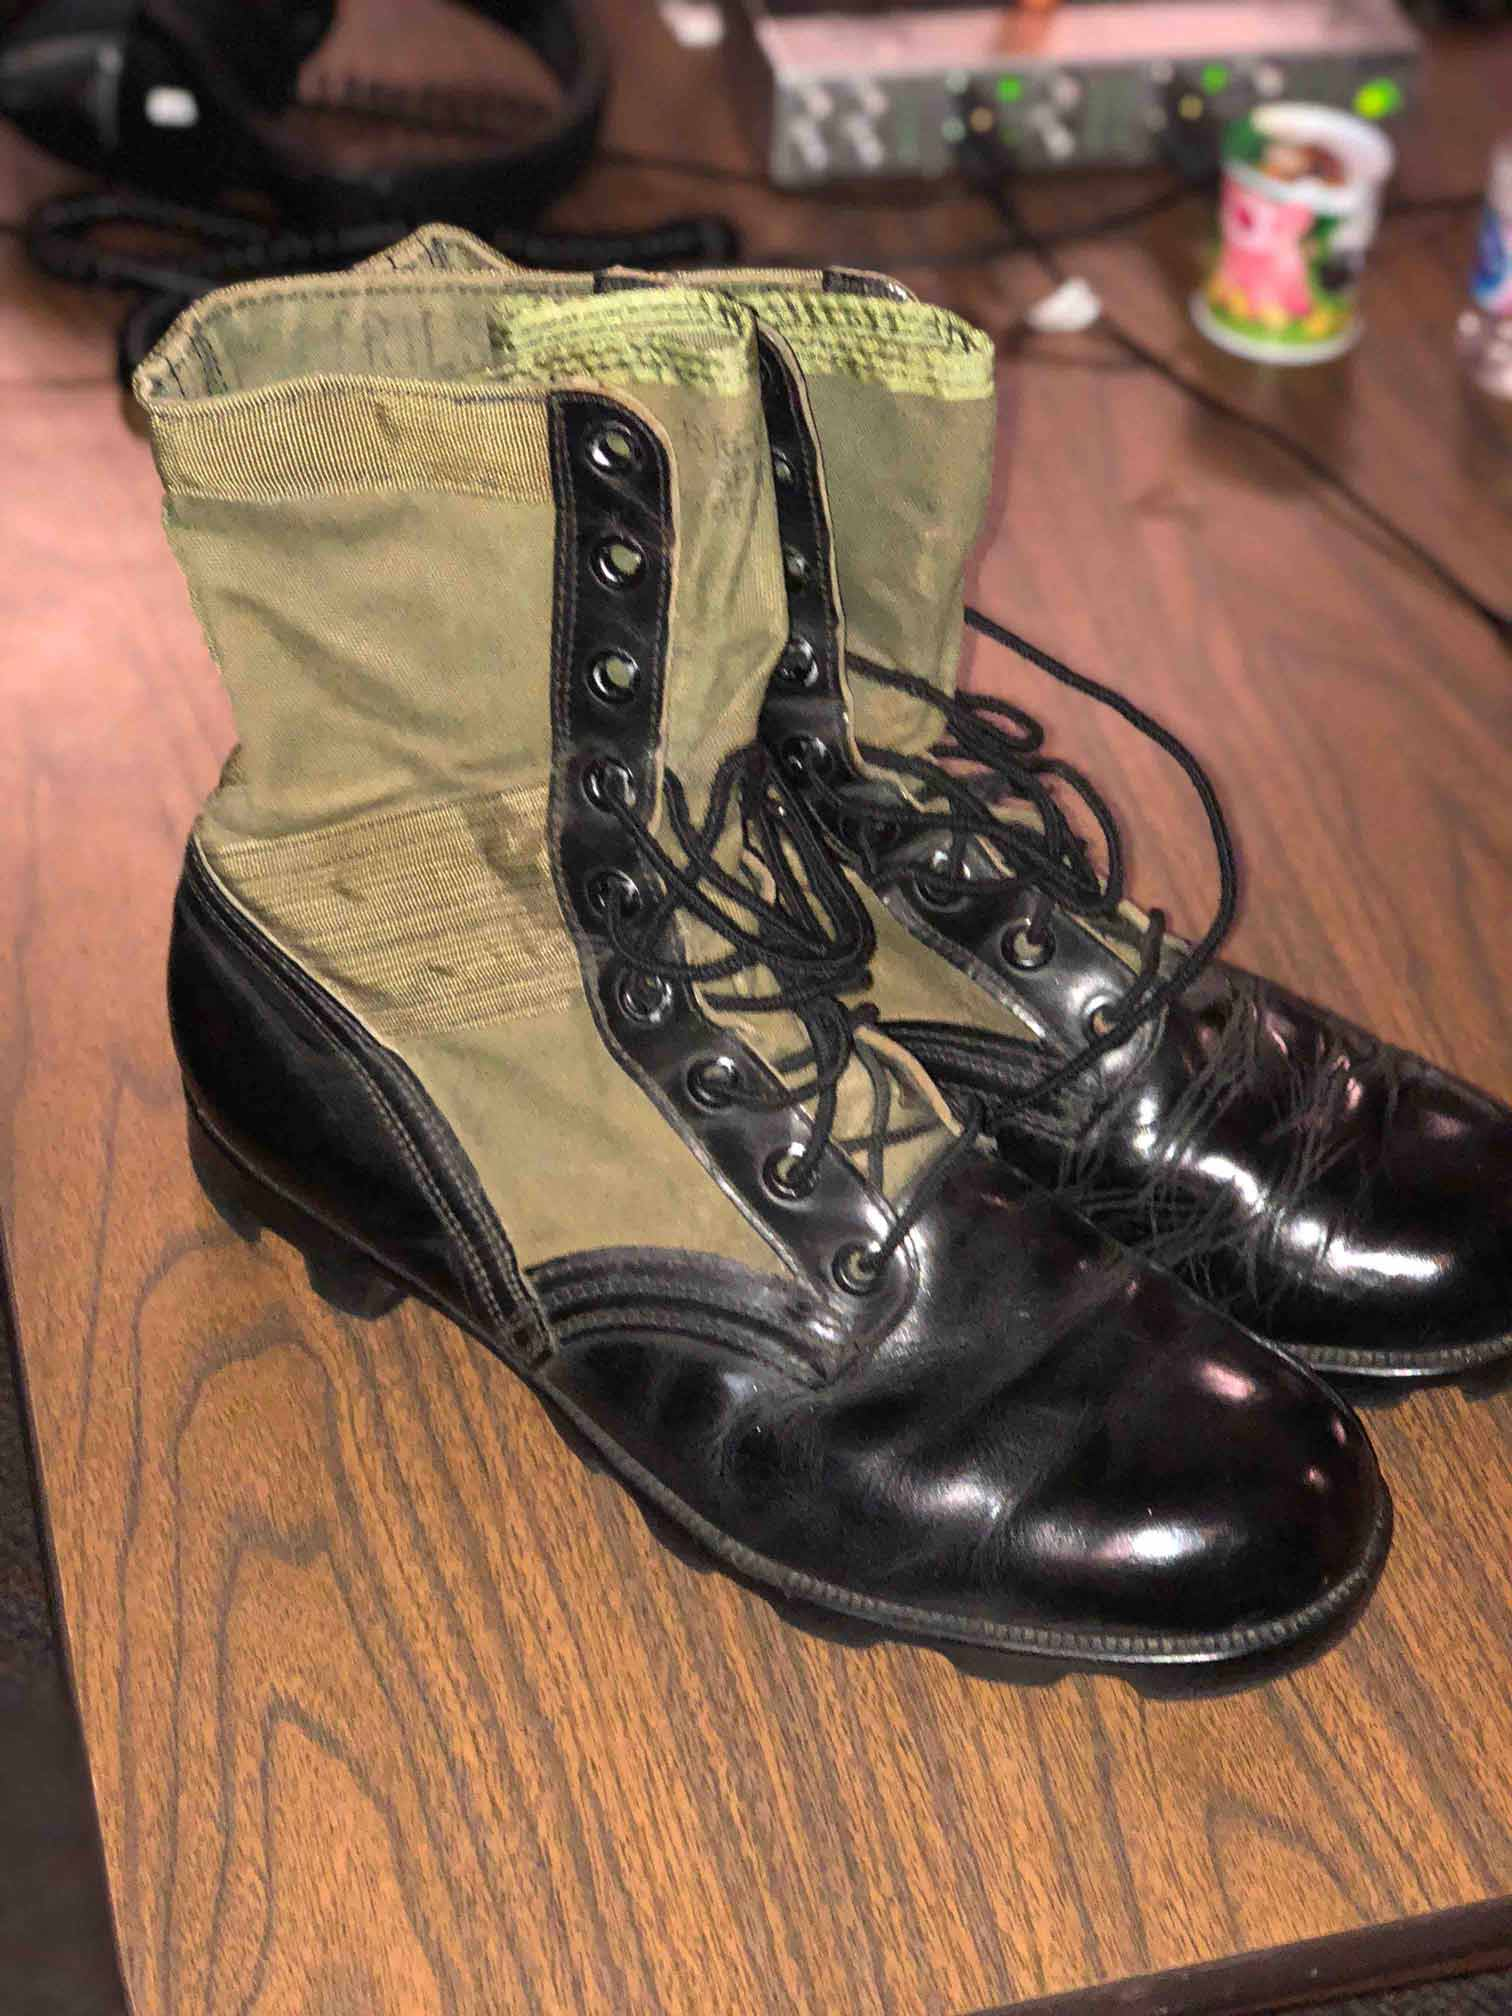 Rick Priest's favorite boots